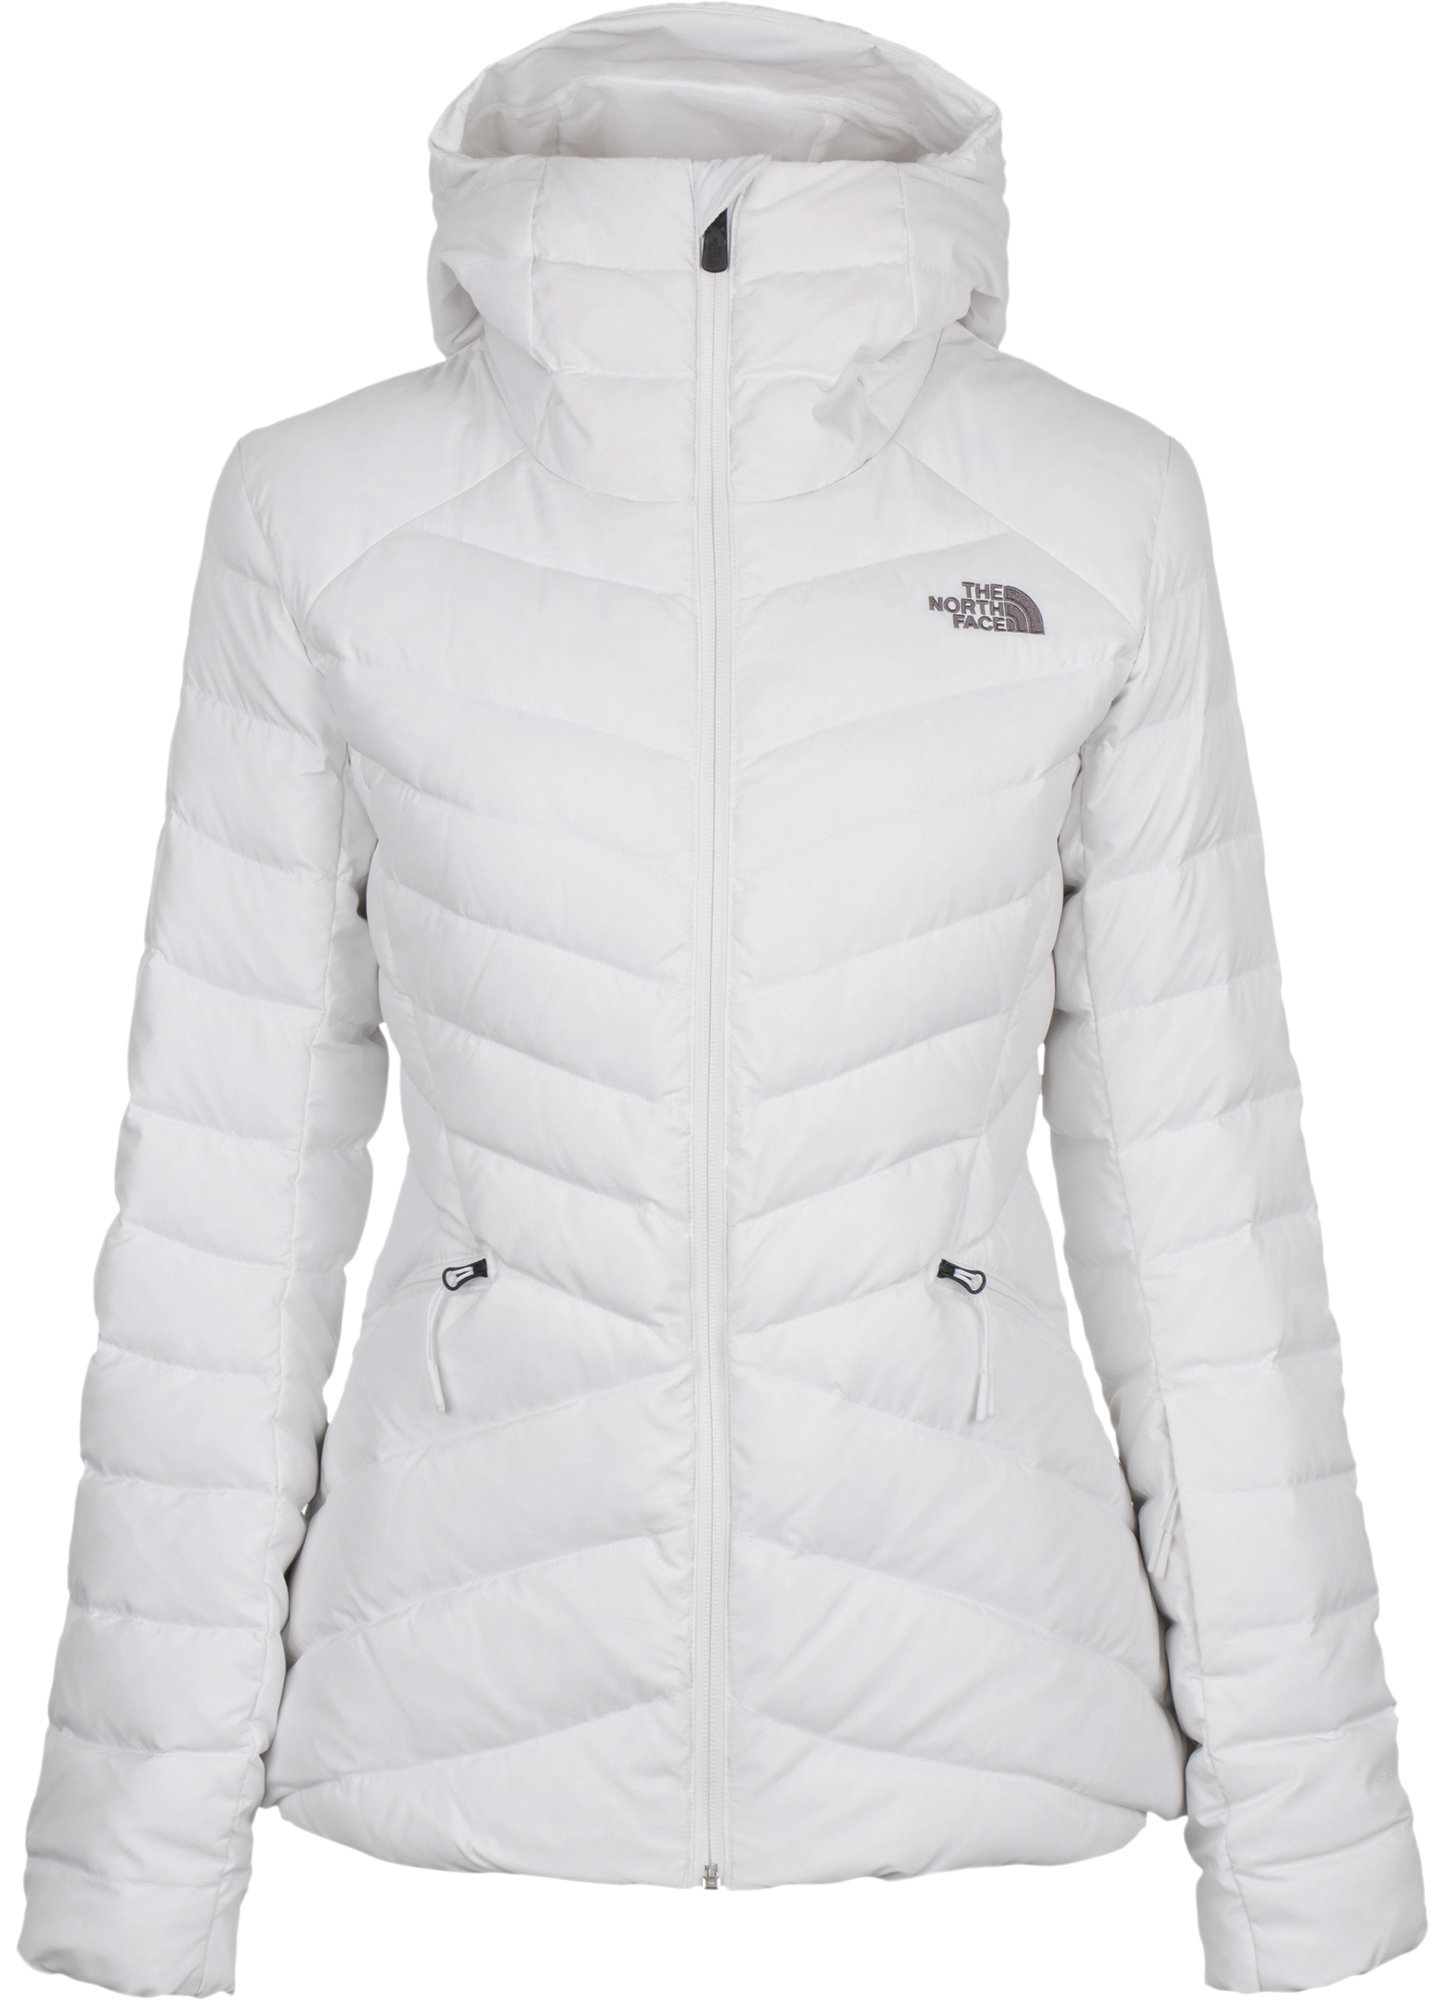 The North Face Куртка пуховая женская The North Face Moonlight худи north pole